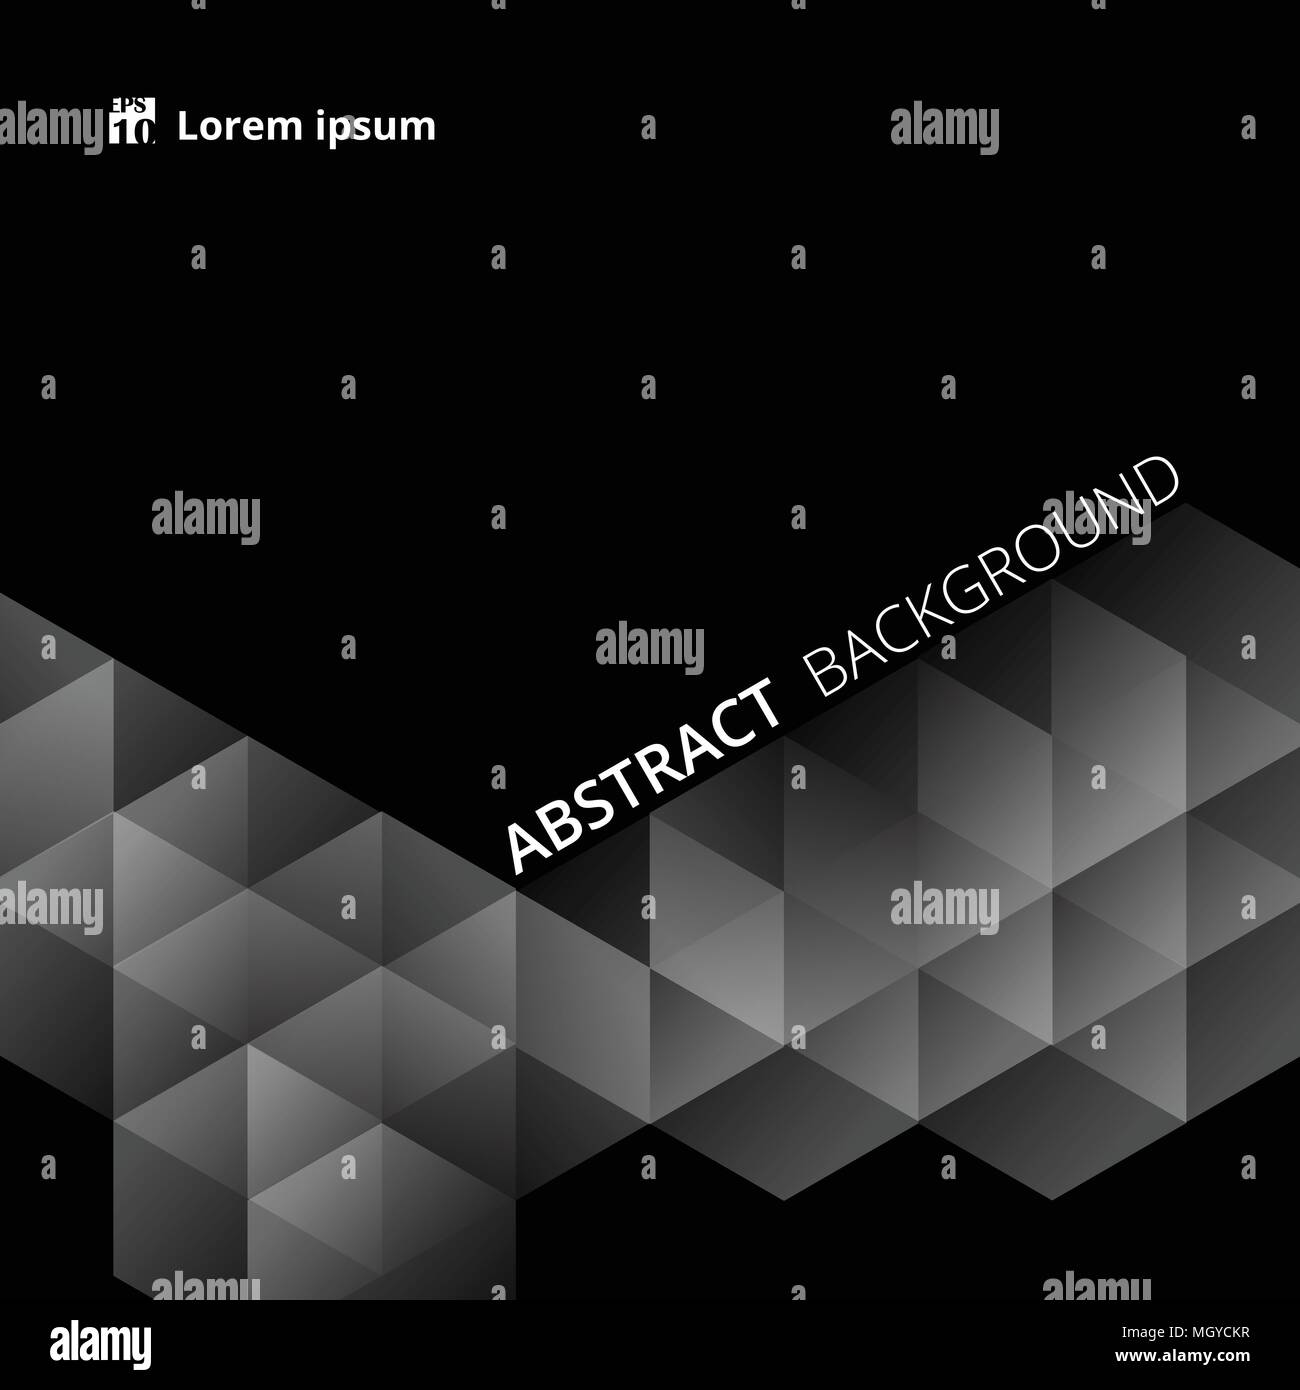 Abstract black background of geometrical slide presentation. Illustration vector eps10 - Stock Image